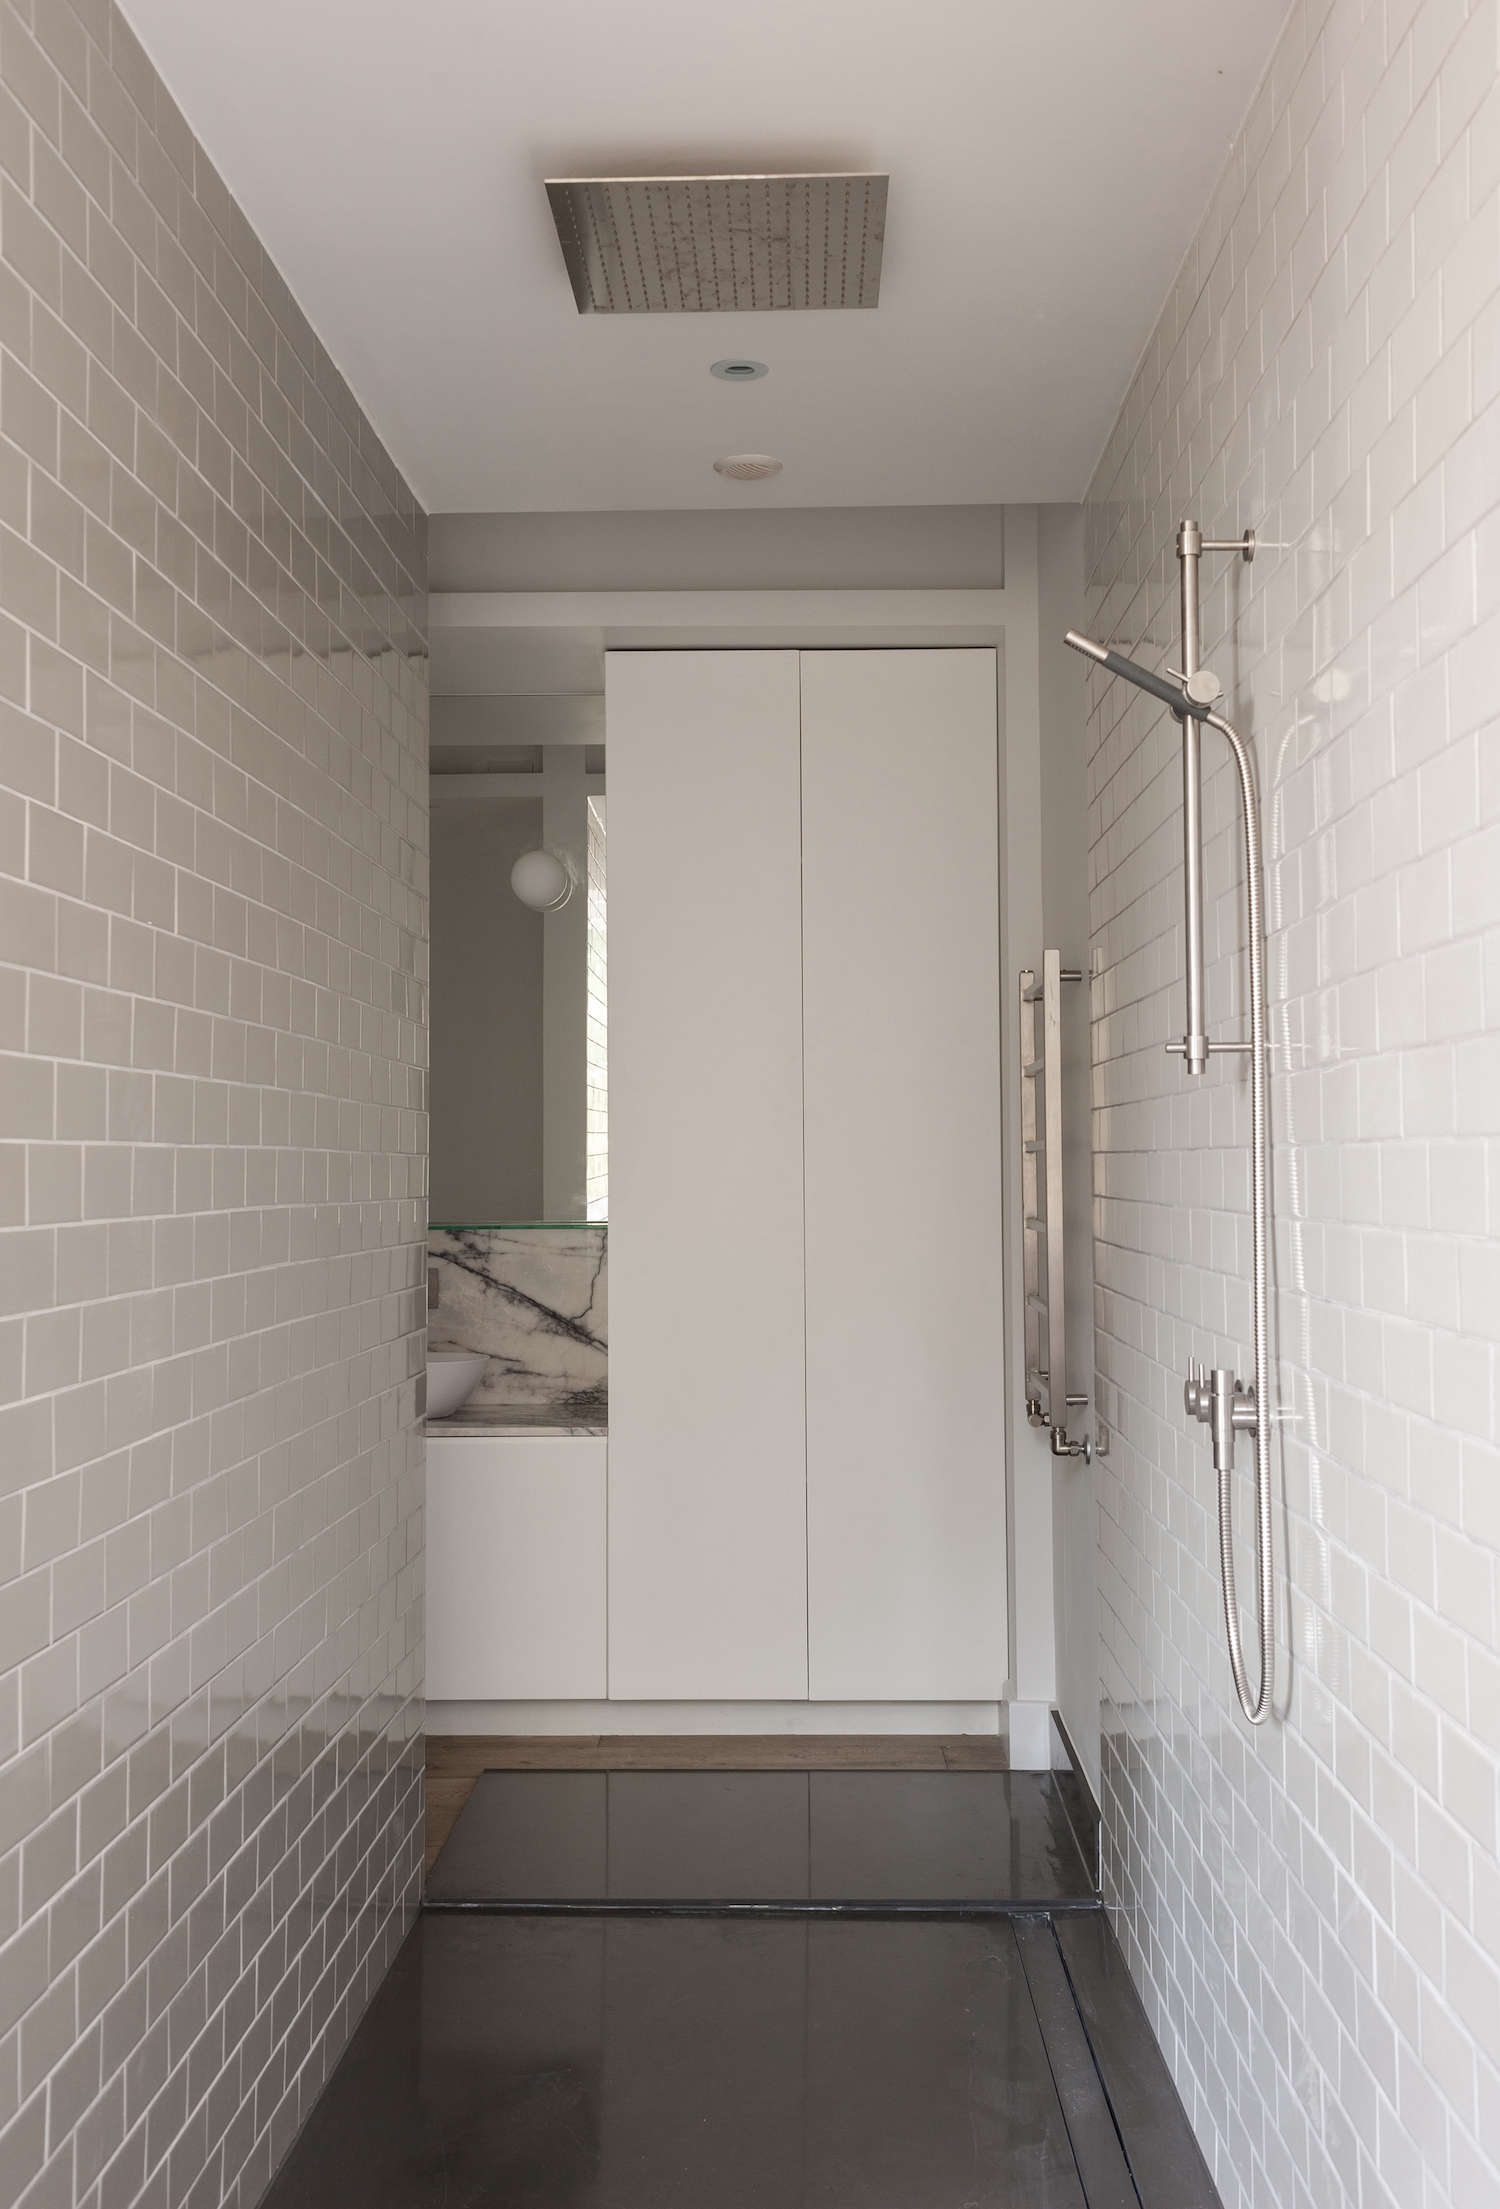 Bathroom of the week in london a dramatic turkish marble bathroom walk through shower with light gray subway ceramic tile dailygadgetfo Gallery